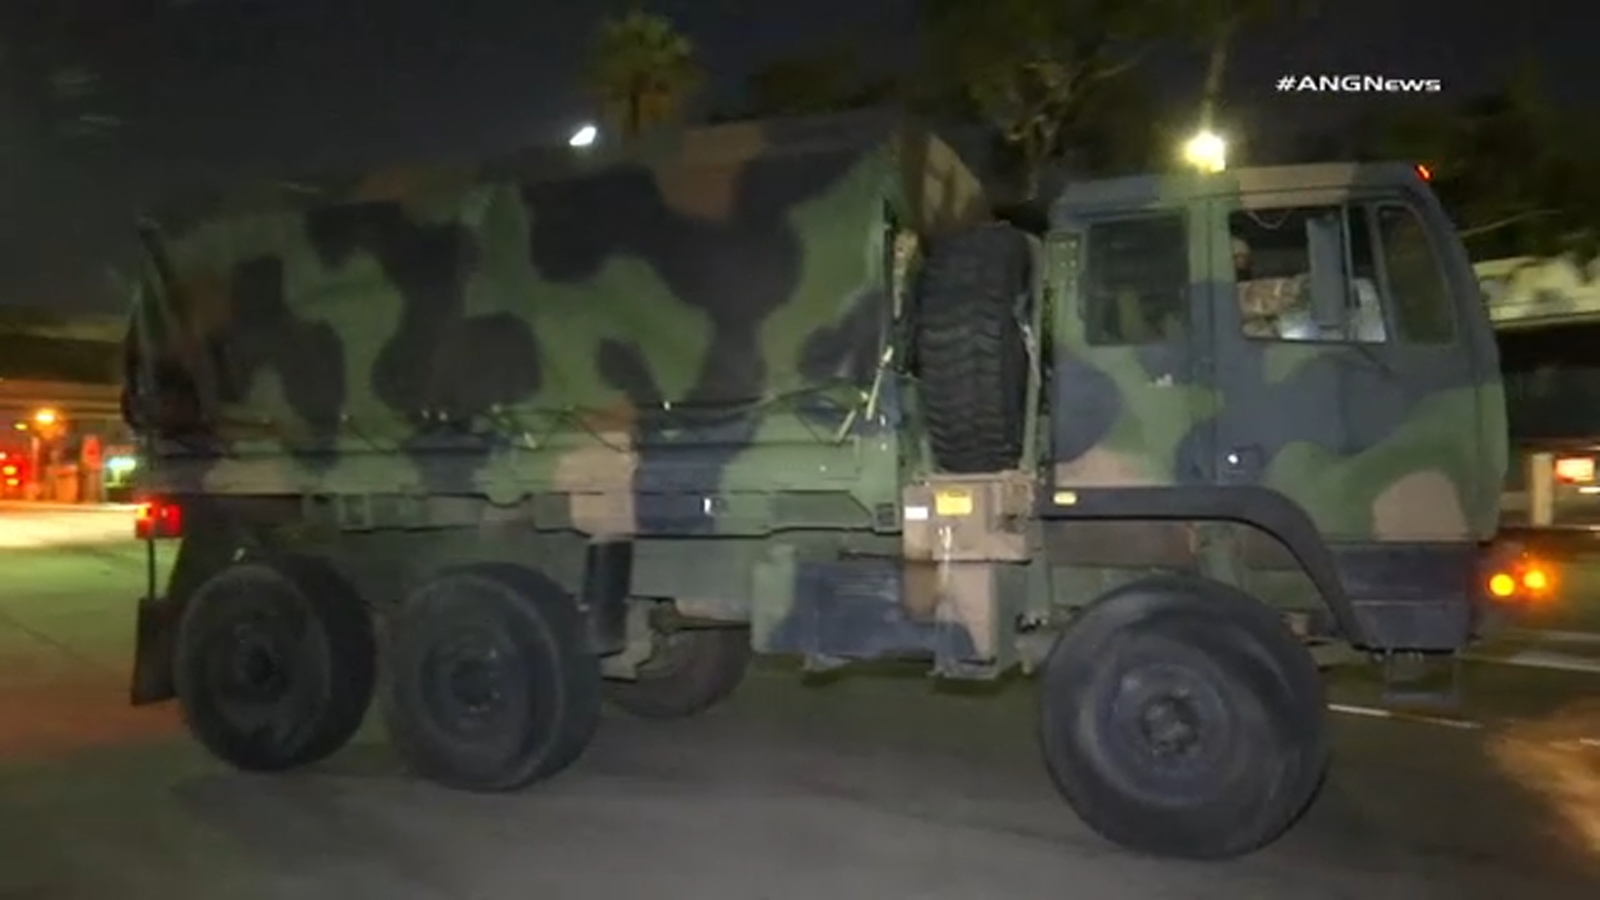 abc7.com: National Guard patrols Los Angeles to help quell chaos following violent protests, looting